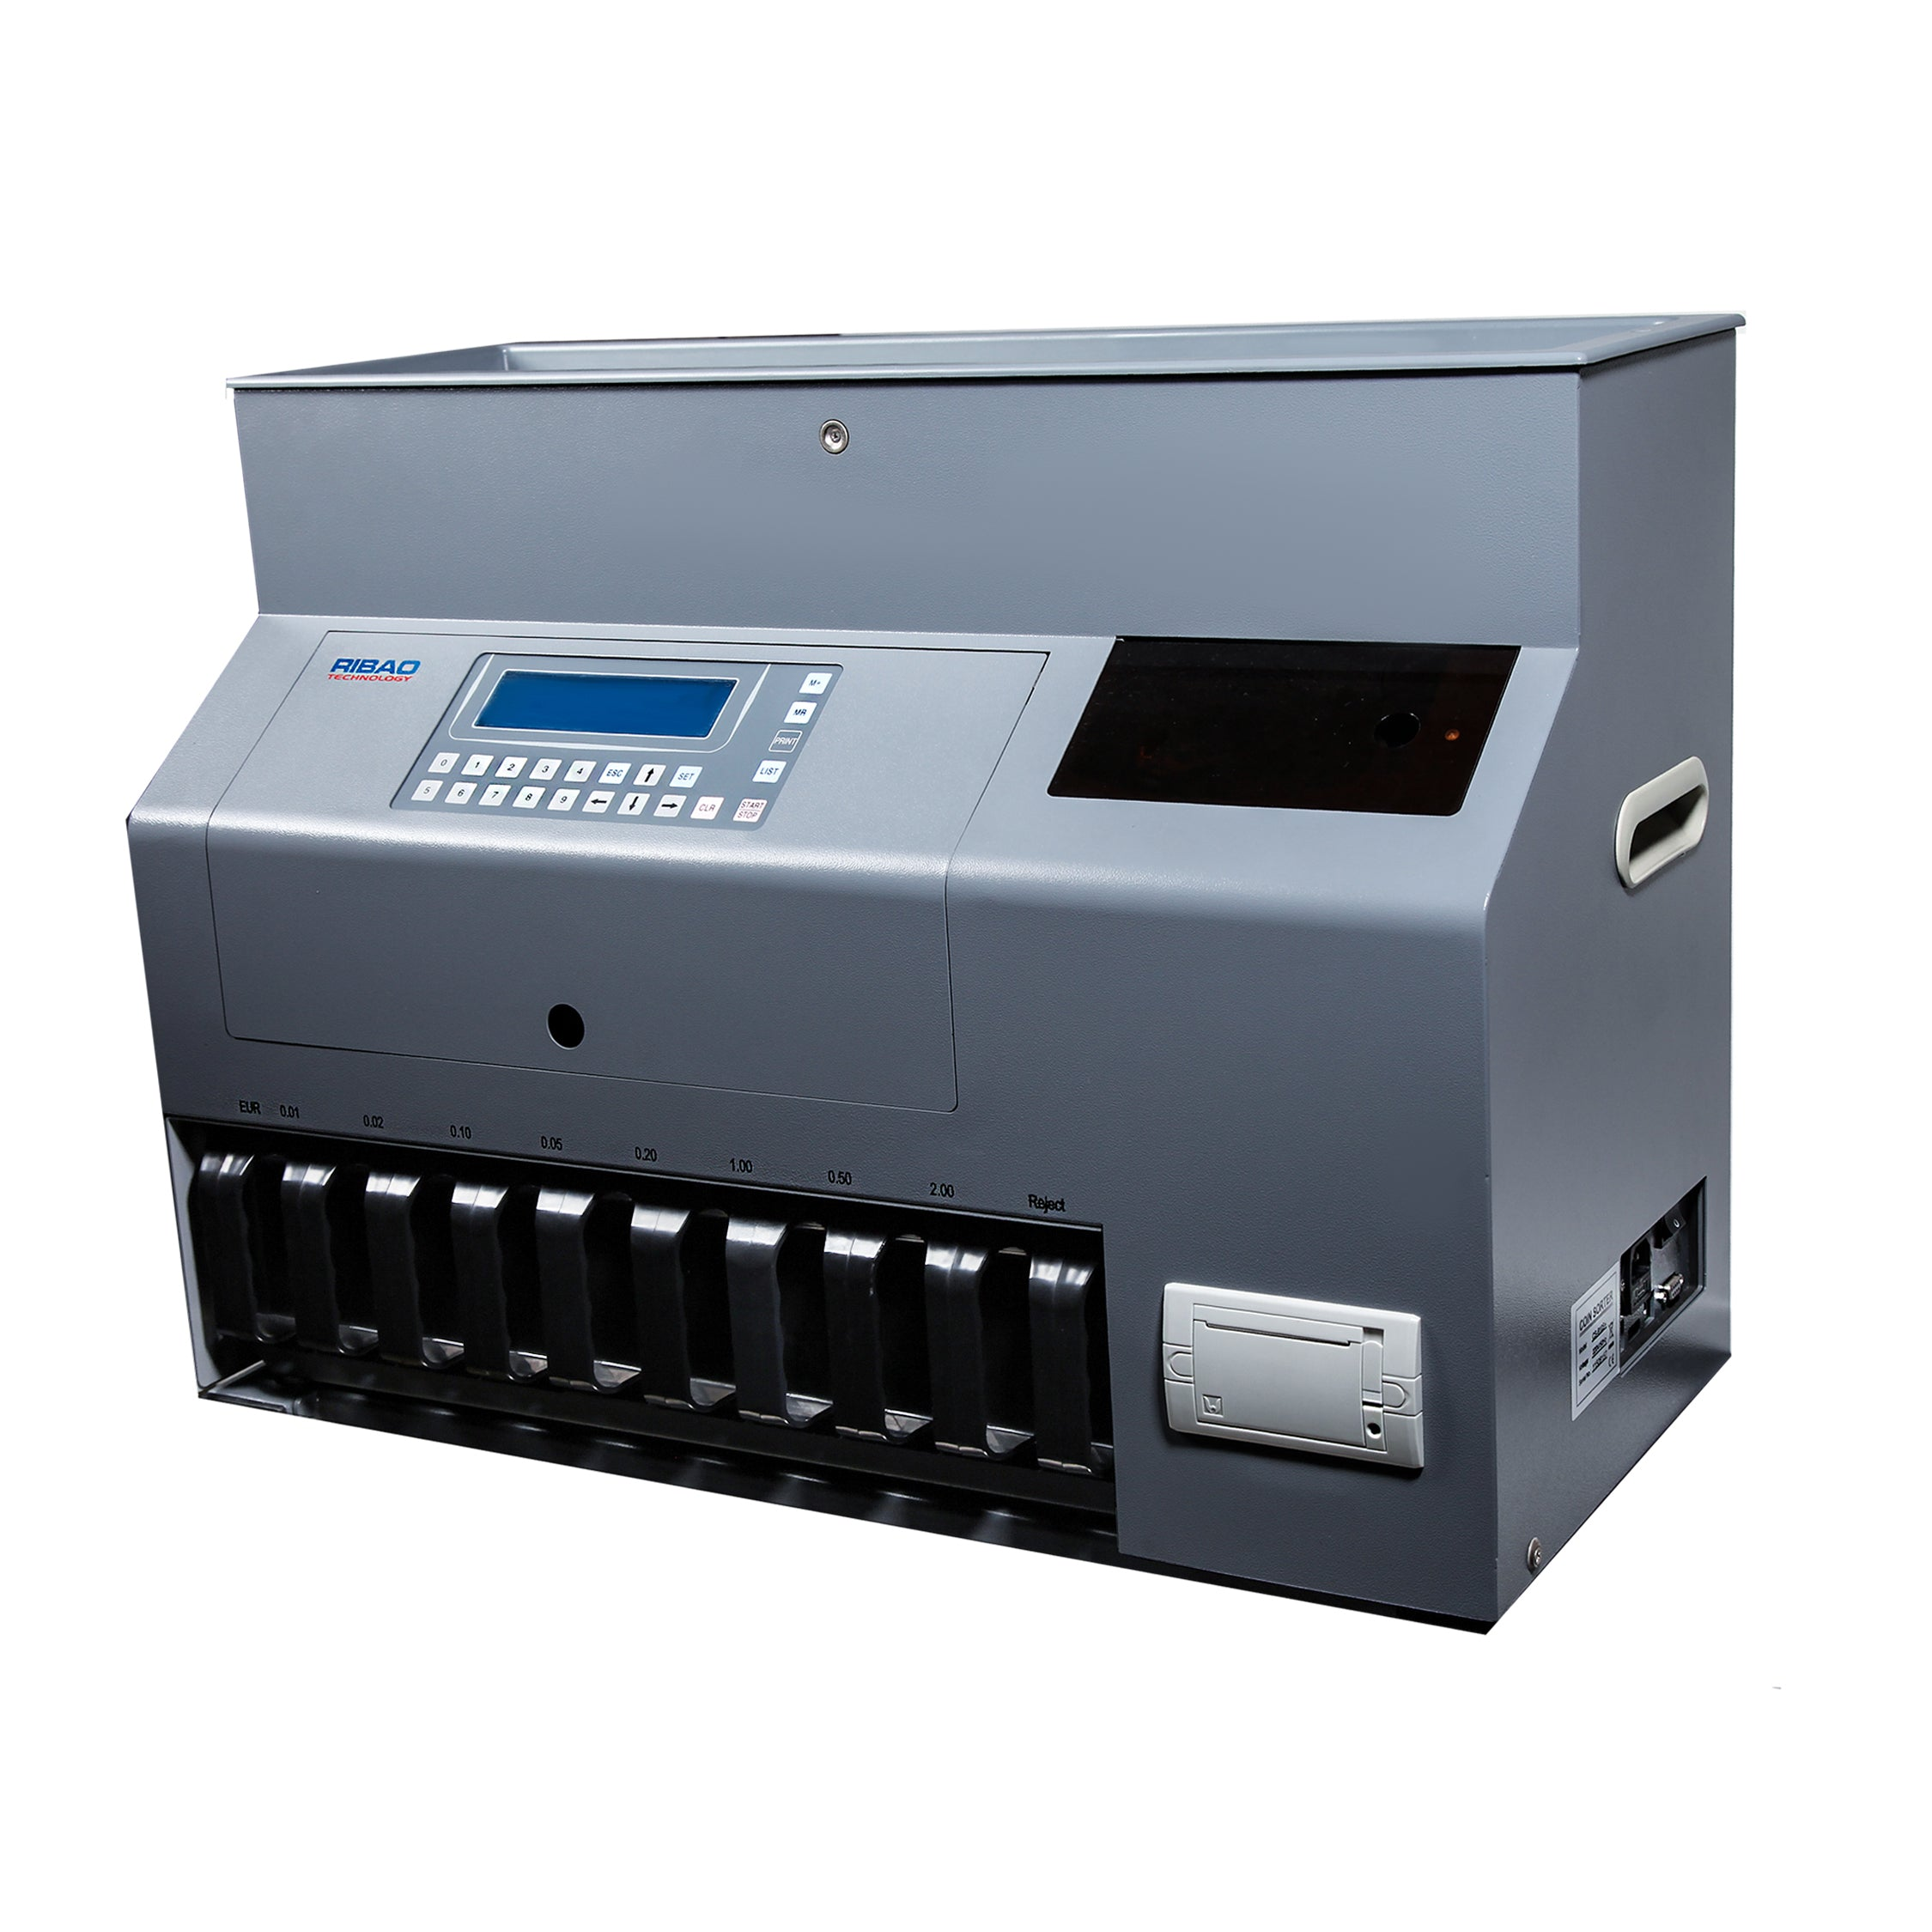 Picture of: Ribao Cs 910s Coin Counting And Sorting Machine Sort Up To 9 Denomina Ribao Technology Europe Aps